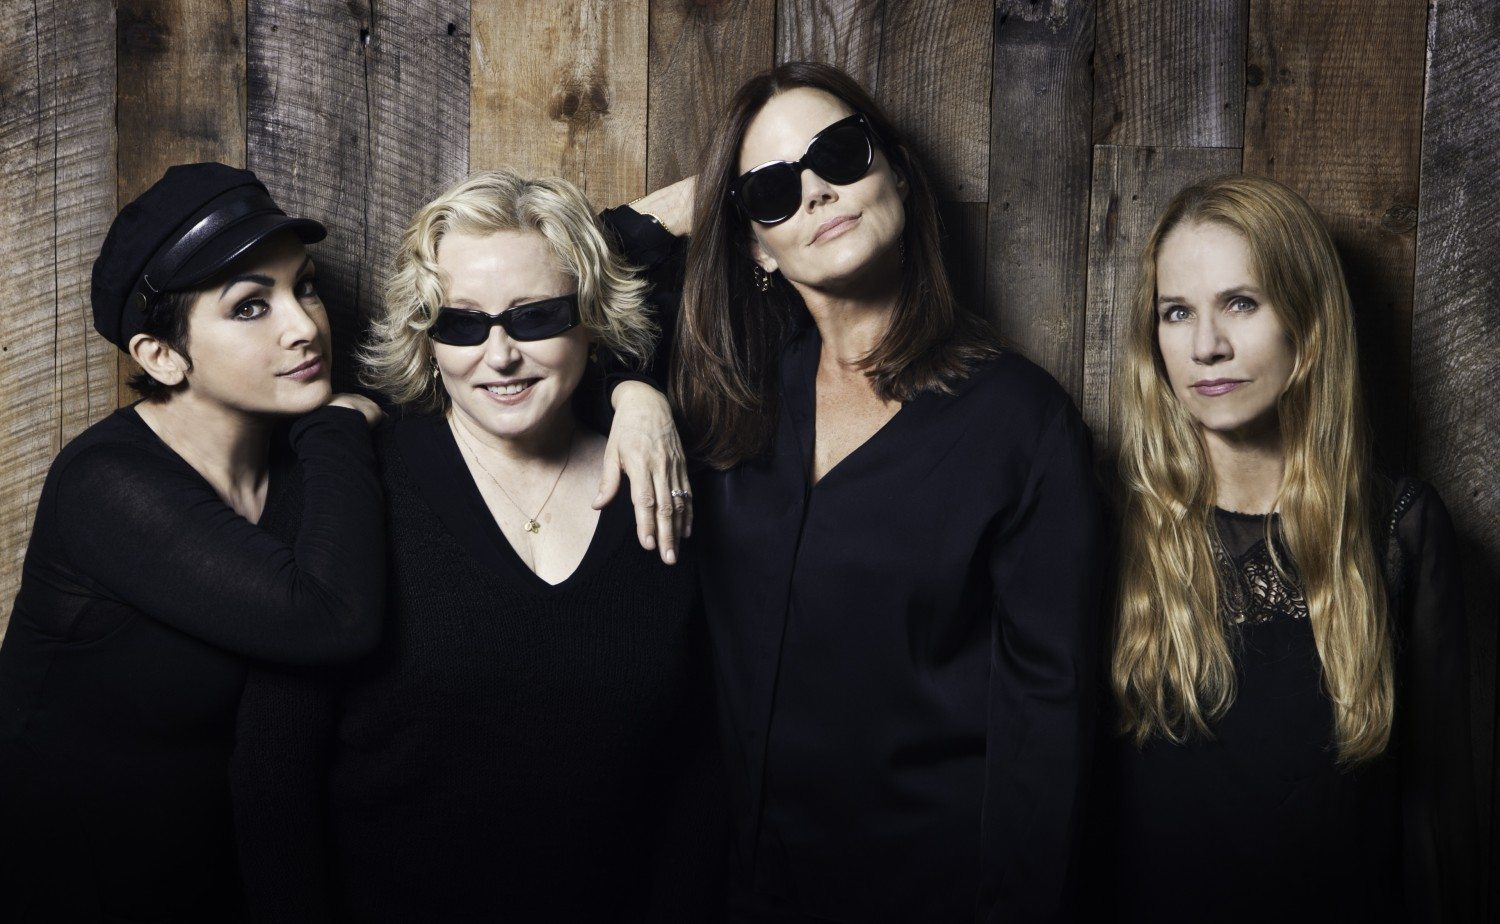 Guitarist Charlotte Caffey on the farewell tour of The Go-Go's, Aug. 13 at Central Park, Green Day, Best Coast and more